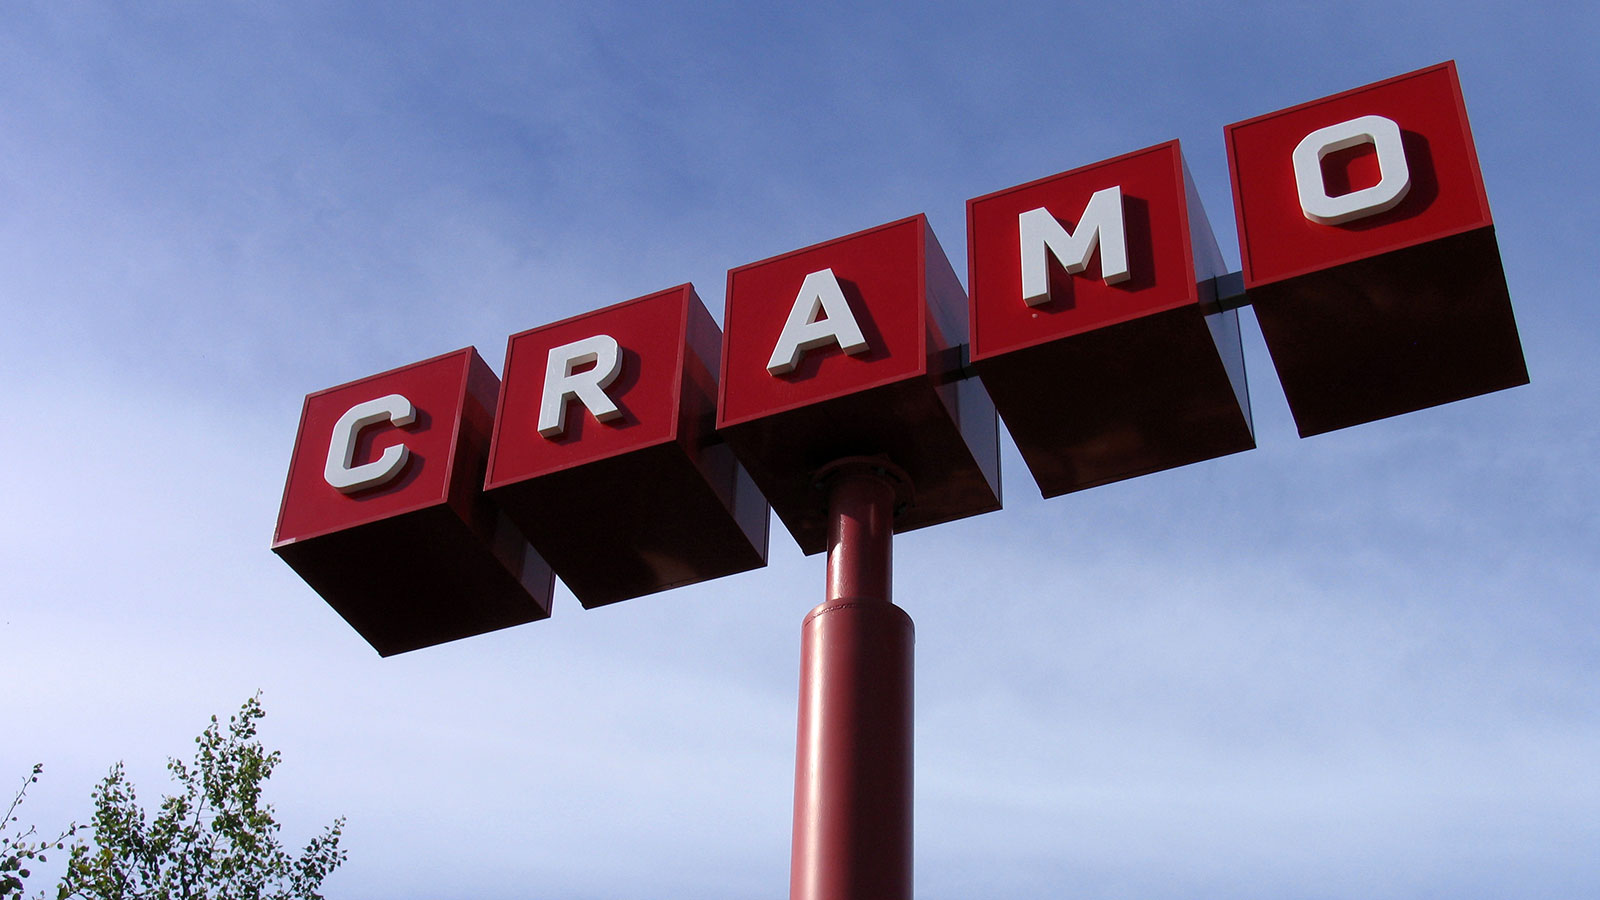 cramo_sign_3_web.jpg